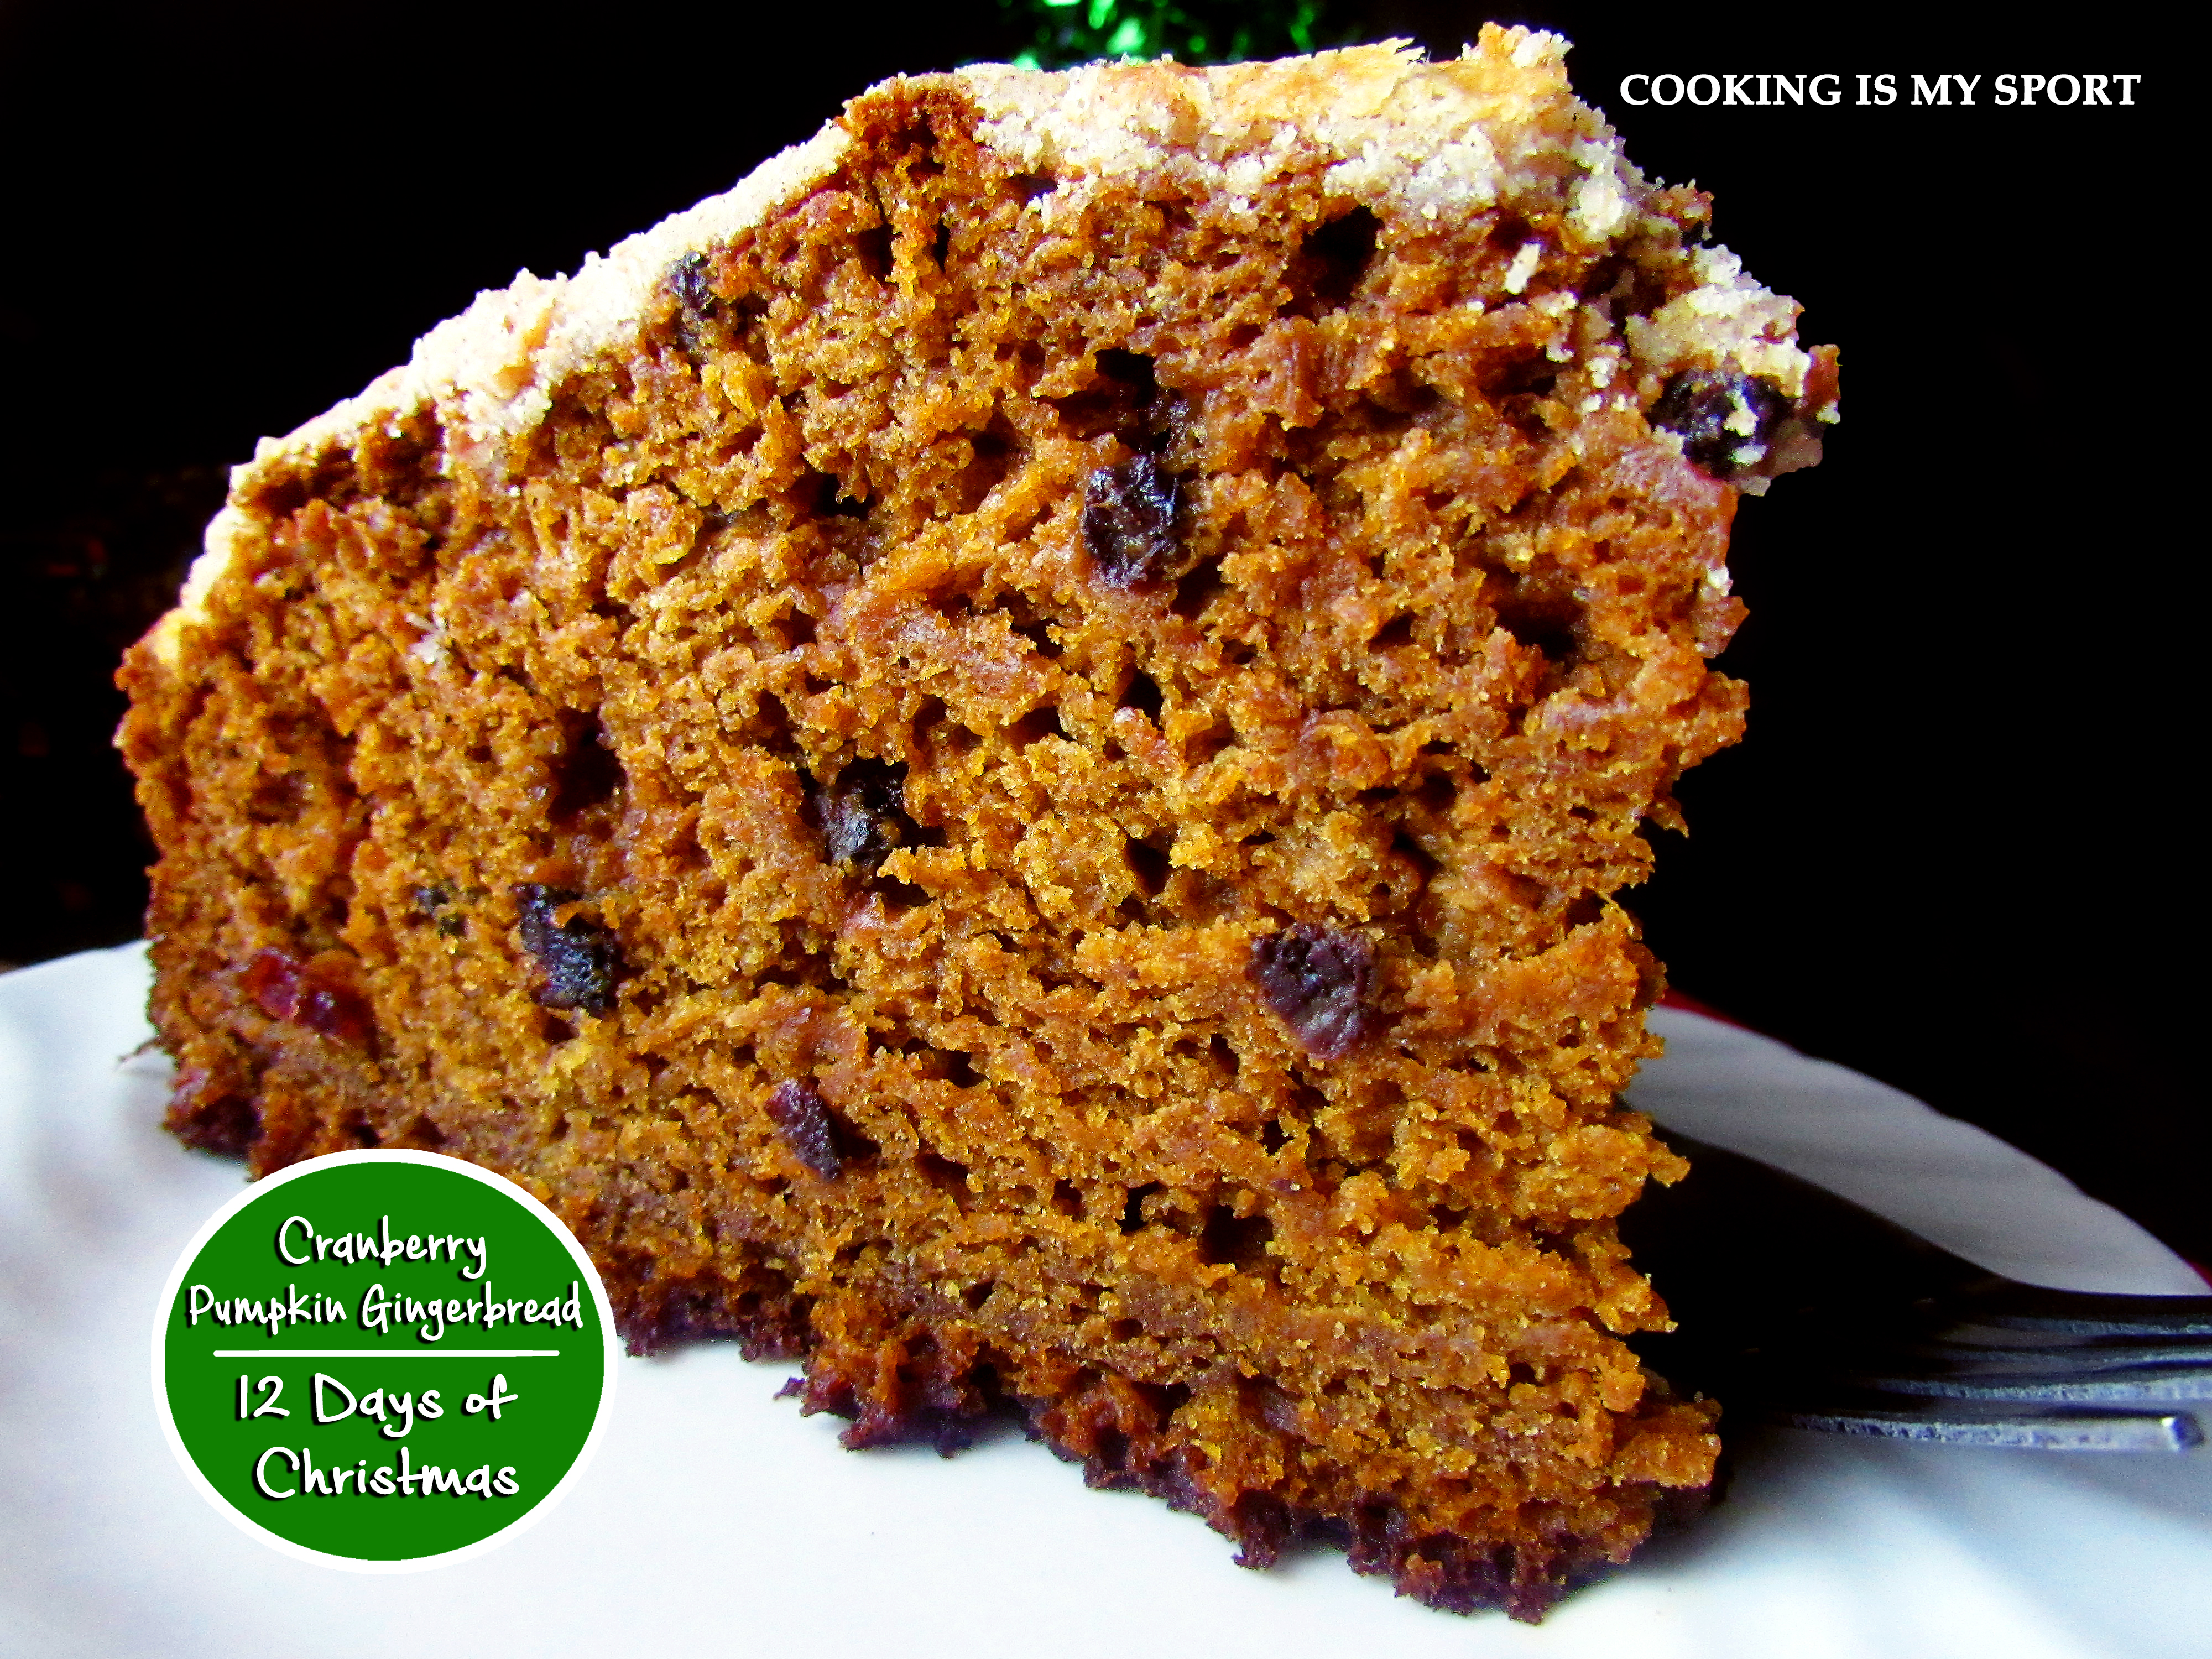 Cranberry Pumpkin Gingerbread3